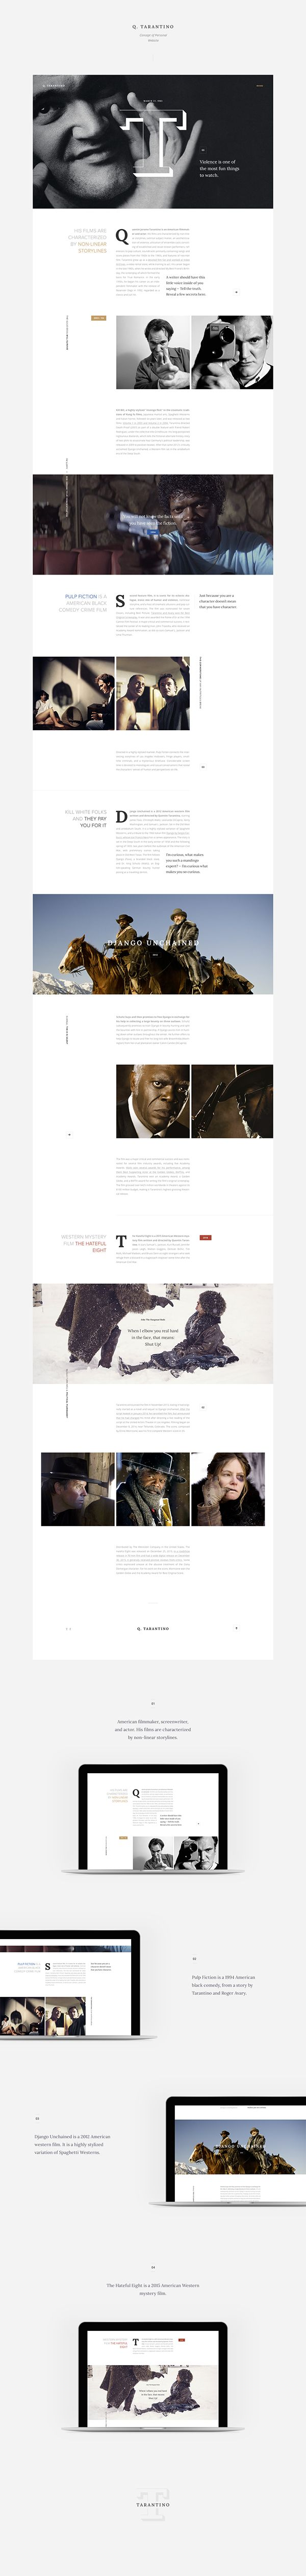 Beautiful Editorial Design for the Web                                                                                                                                                                                 More